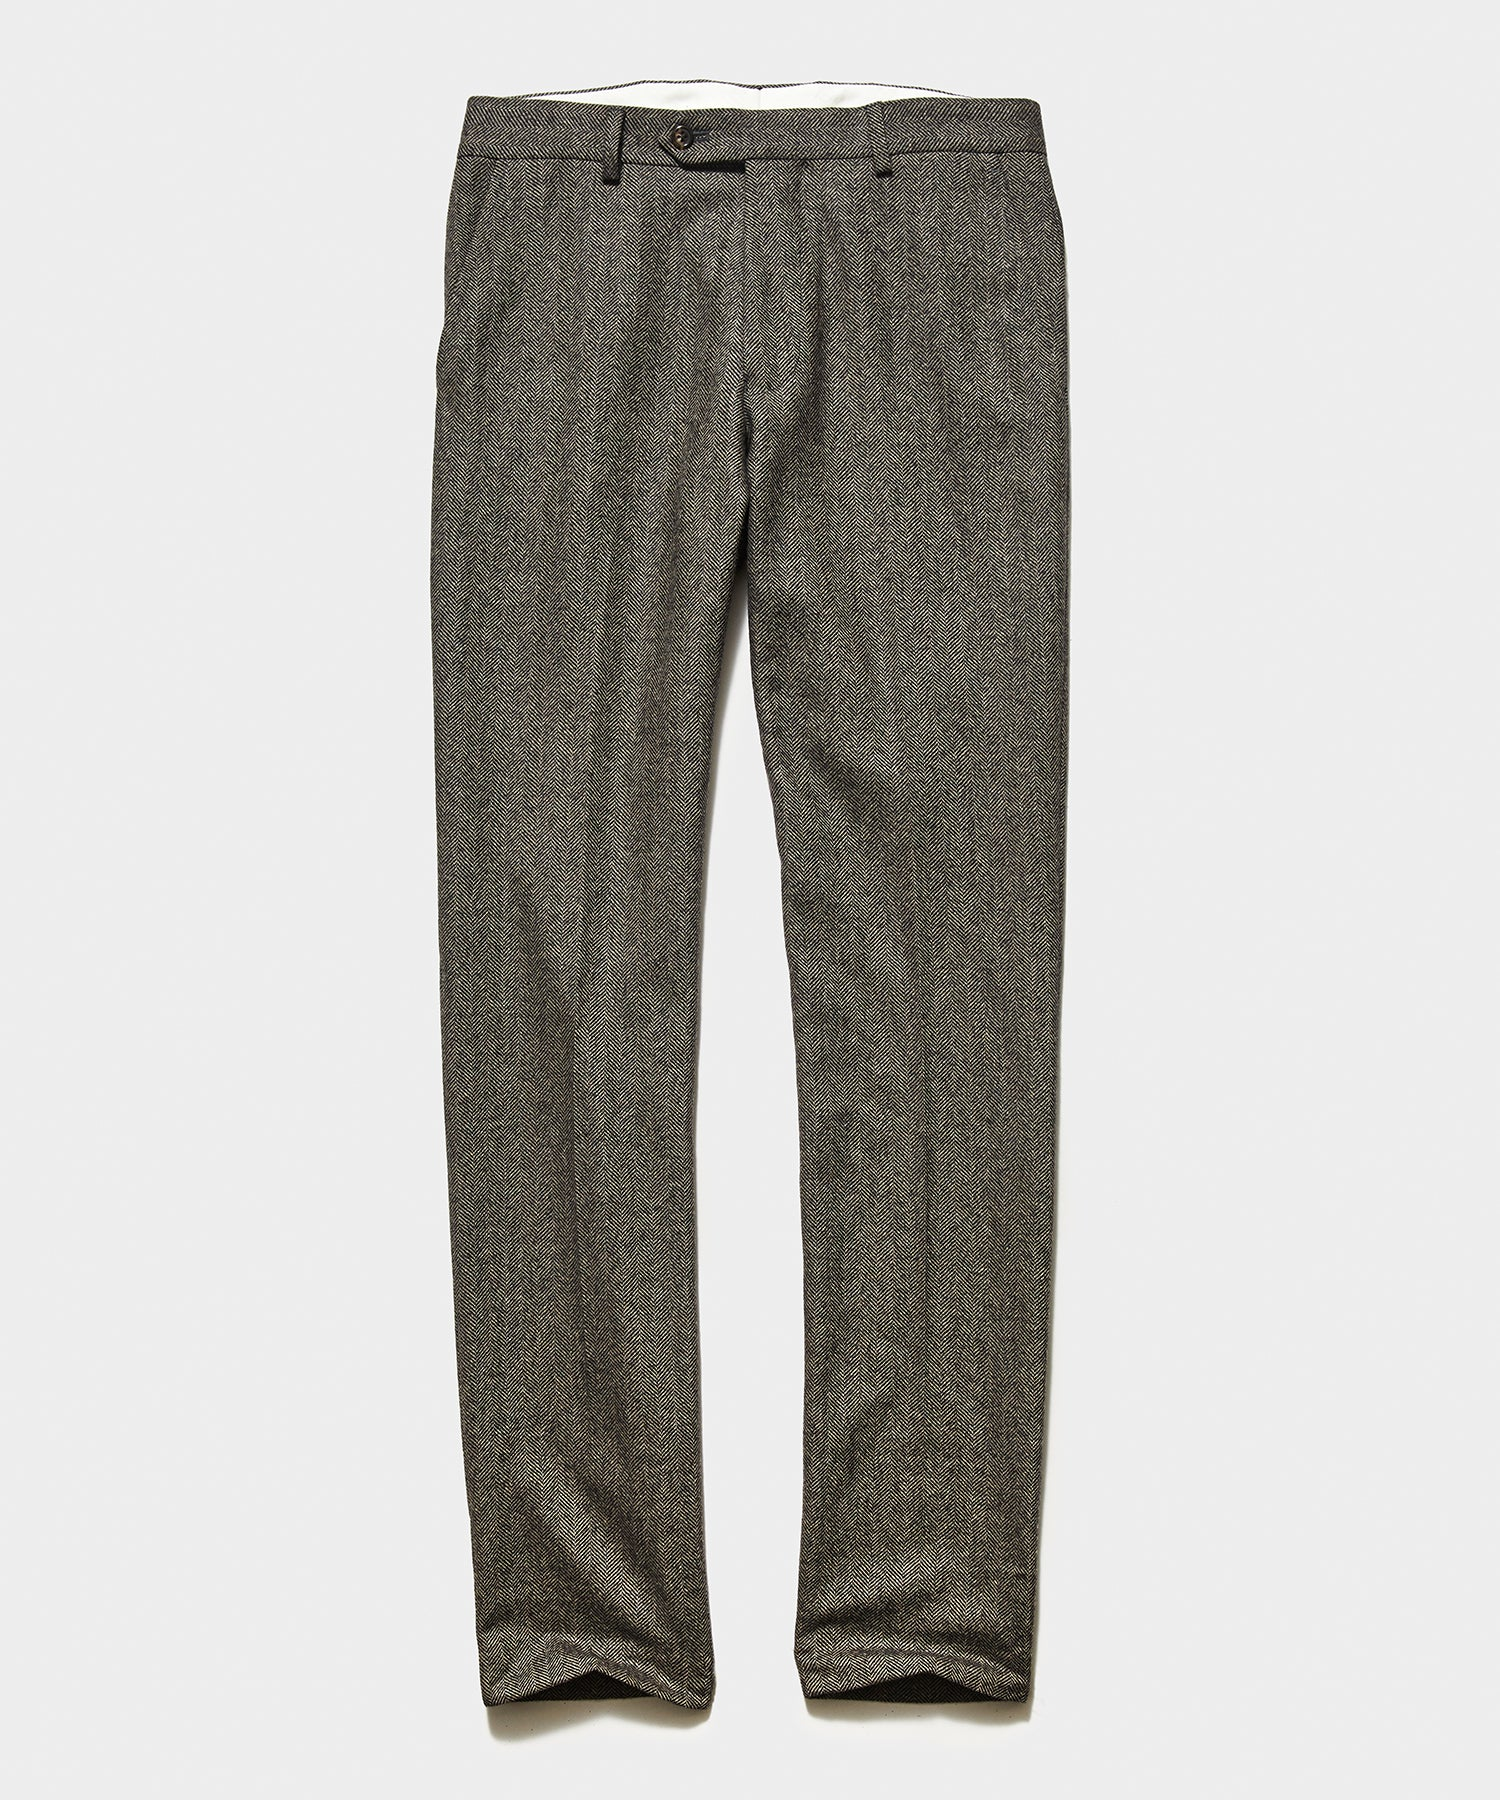 Sutton English Herringbone Trouser in Brown